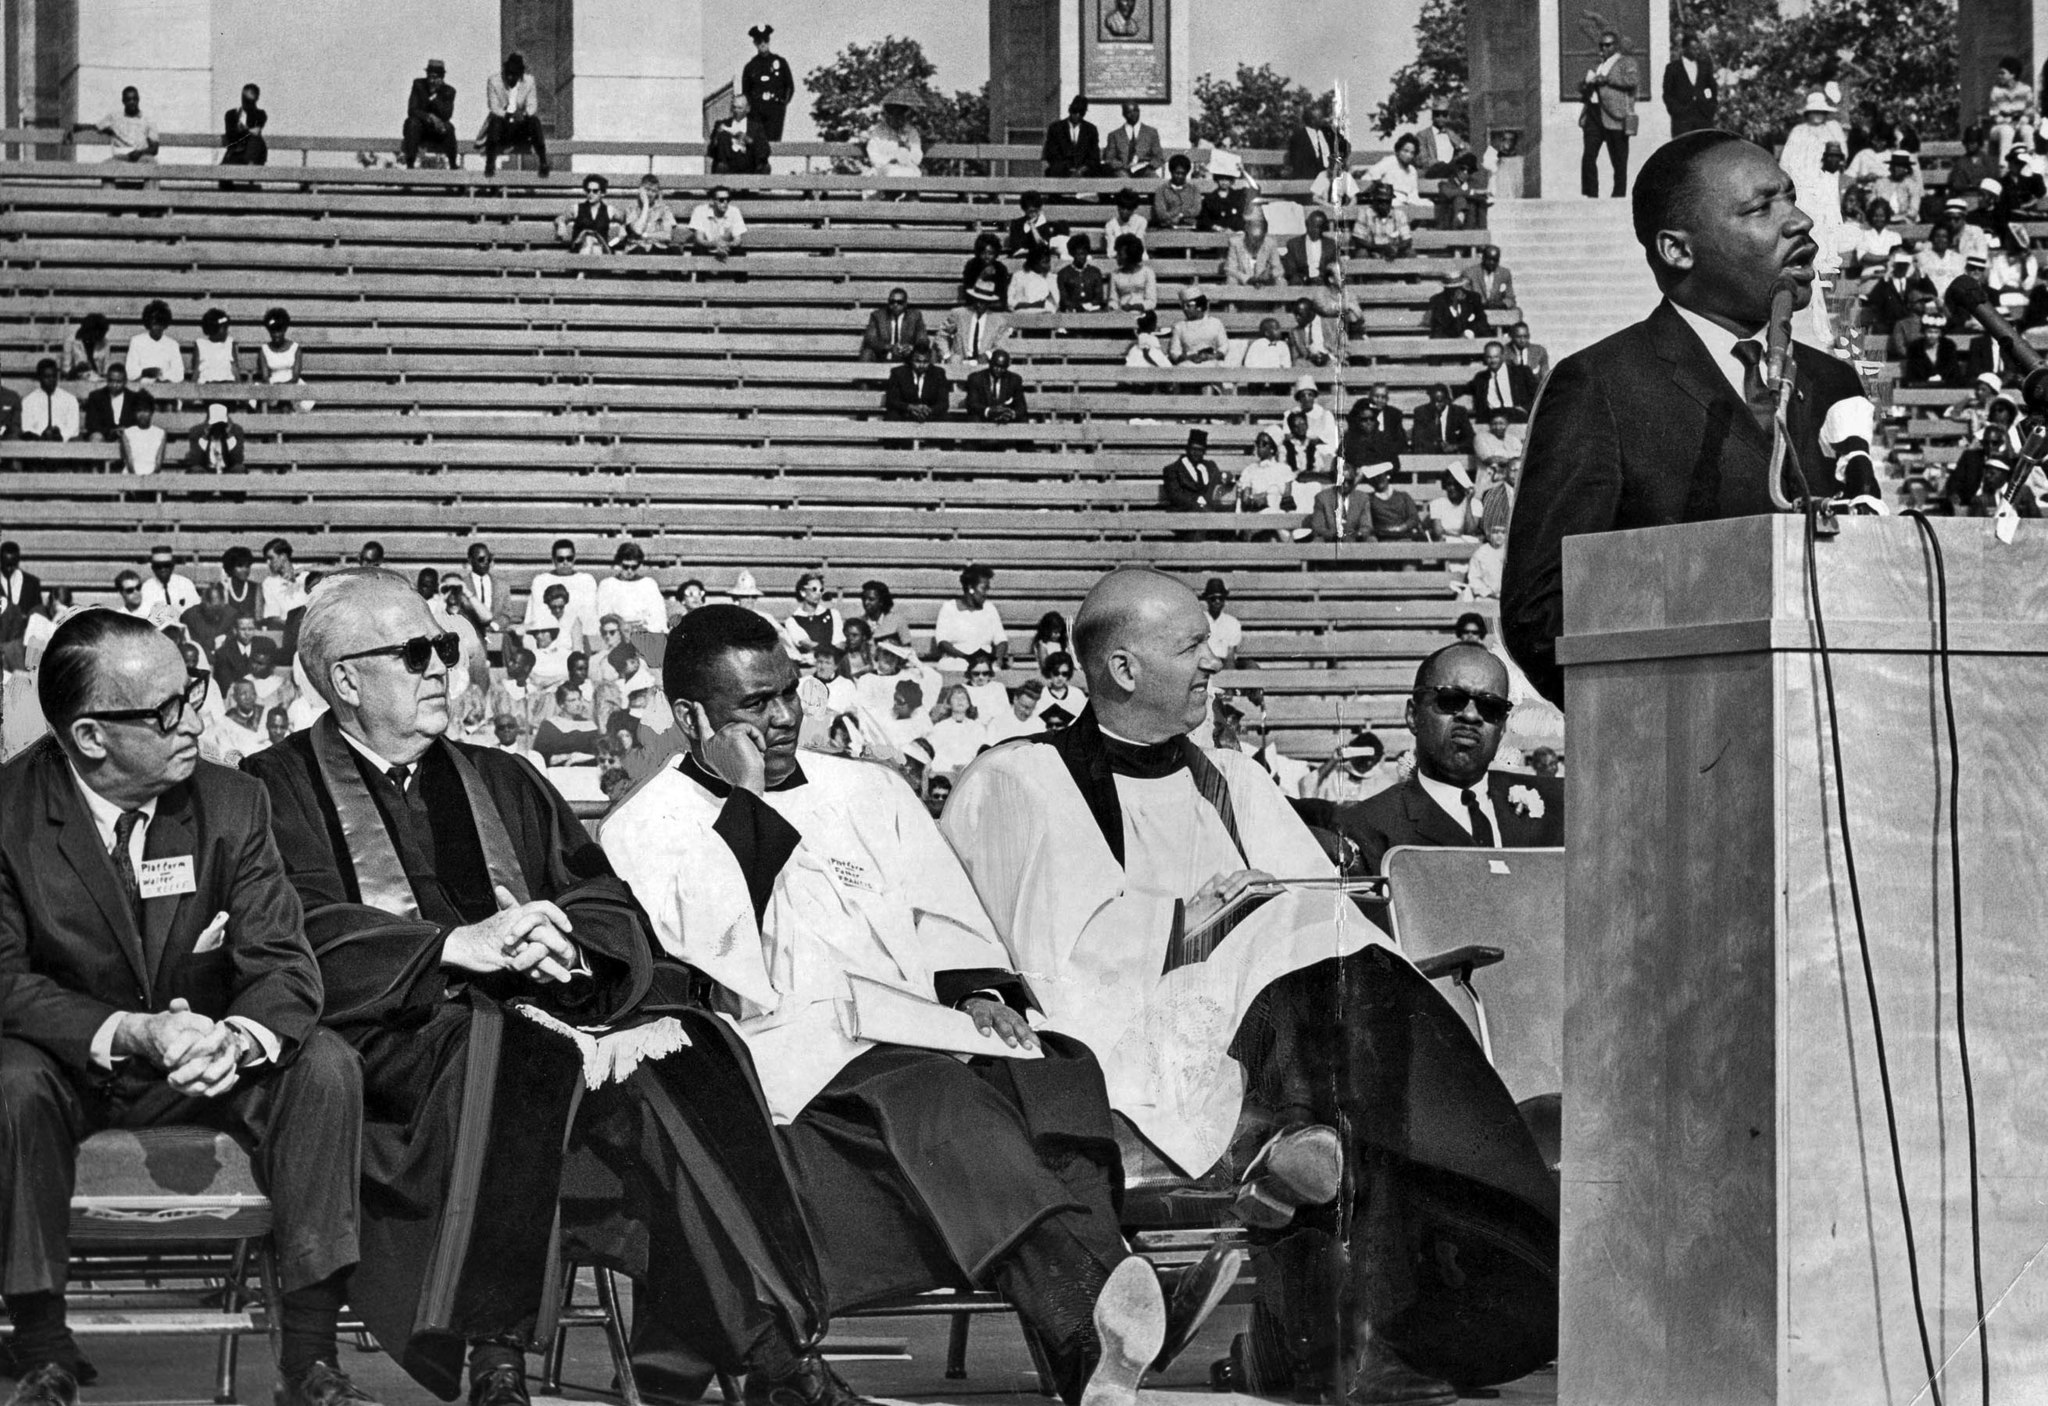 May 31, 1964: Dr. Martin Luther King, Jr. speaks at a civil rights rally at the Memorial Coliseum.